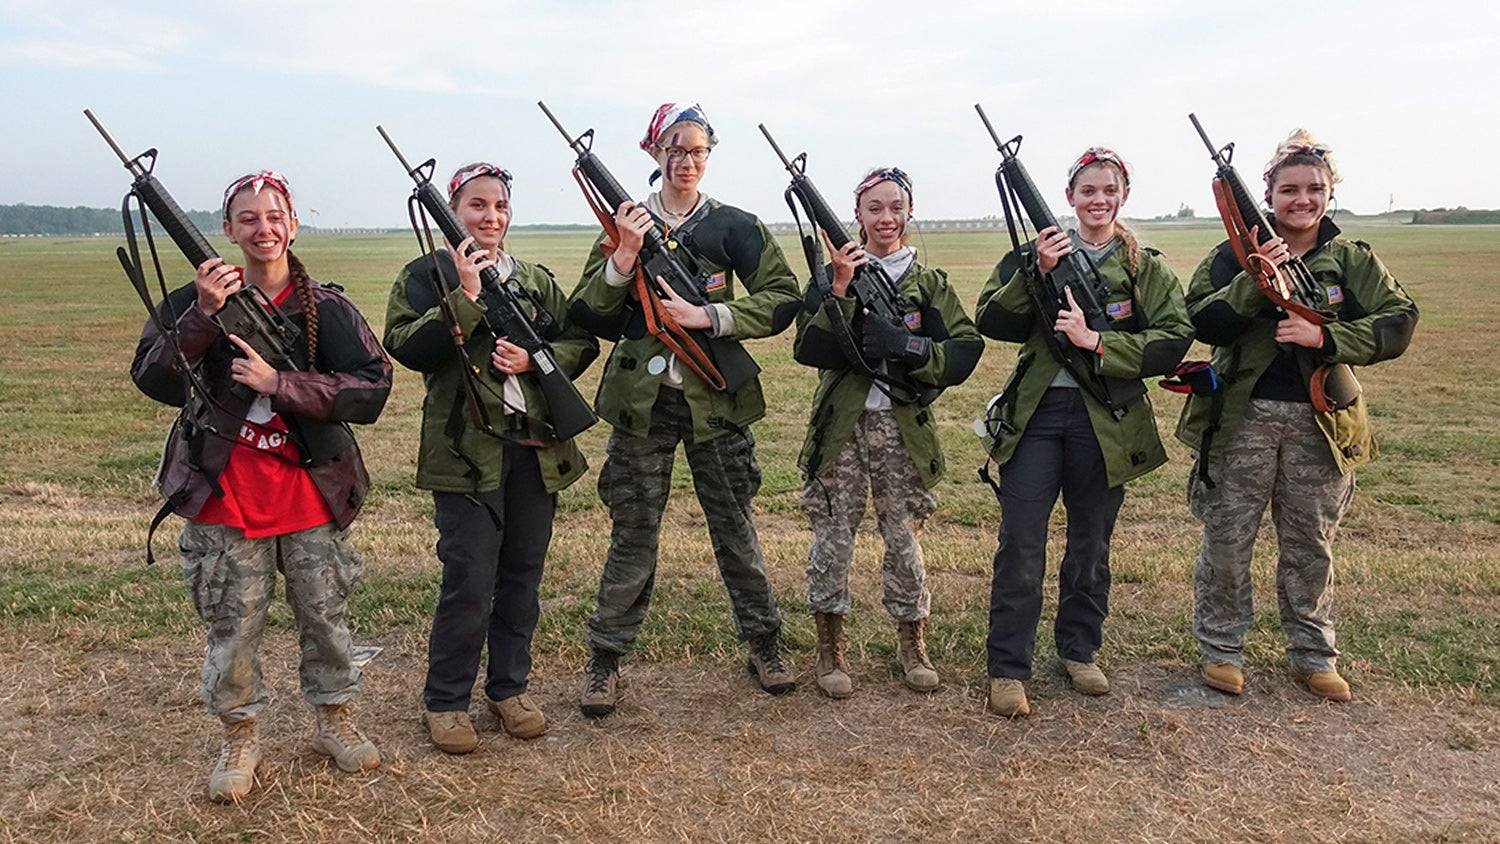 First All-Girl Team Competes in Rattle Battle